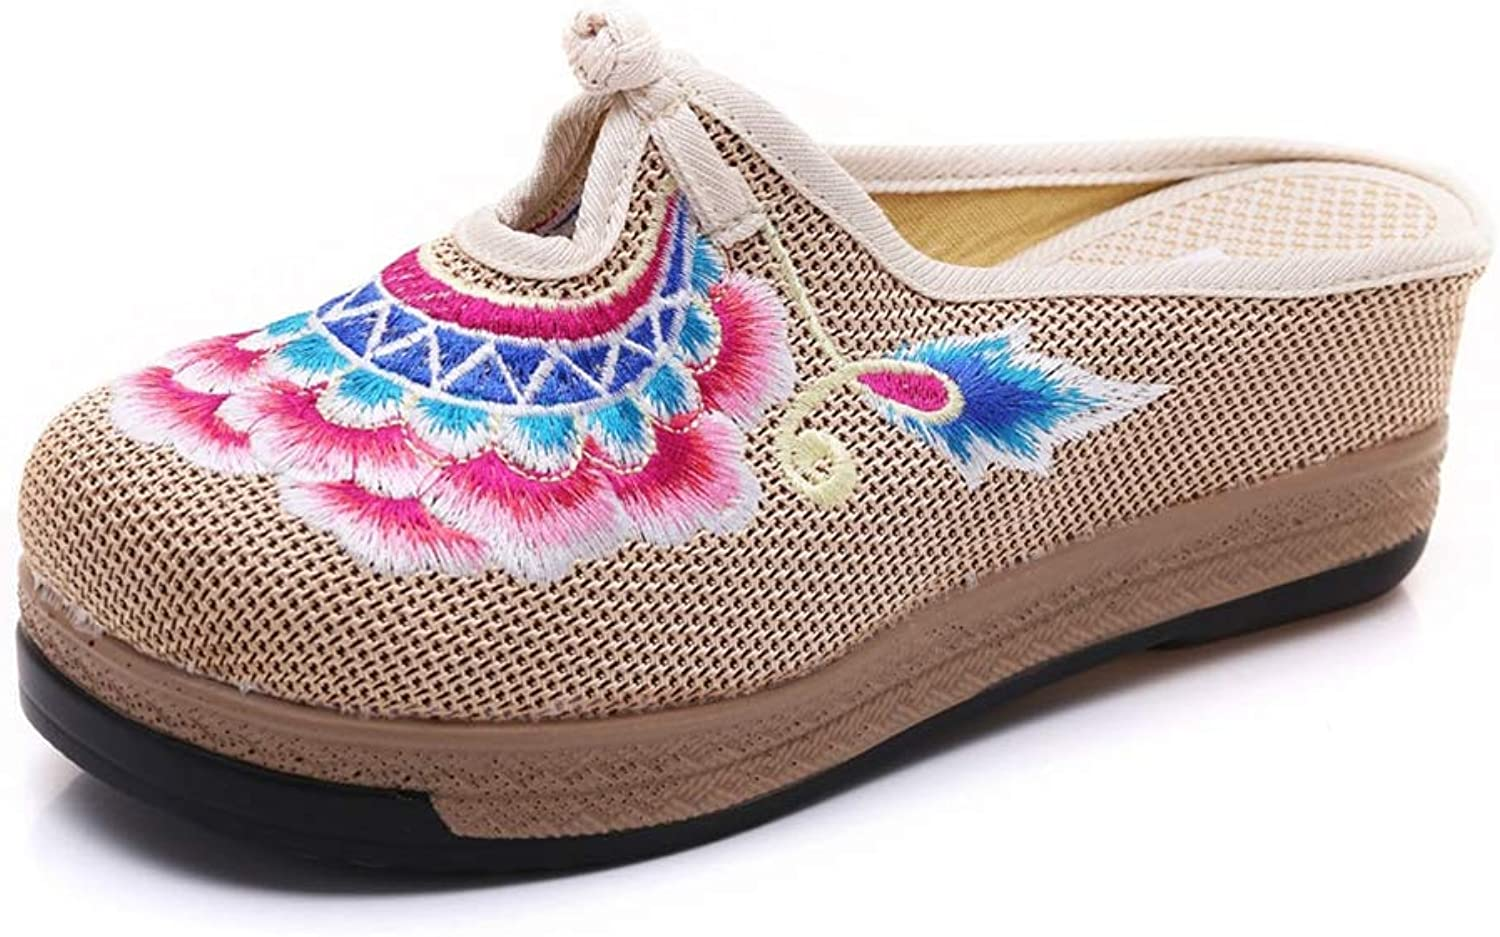 T-JULY Women Close Toe Slippers Ethnic Embroidery Mixed Style Wedges Spring High Heel shoes Ladies Platforms Sandals